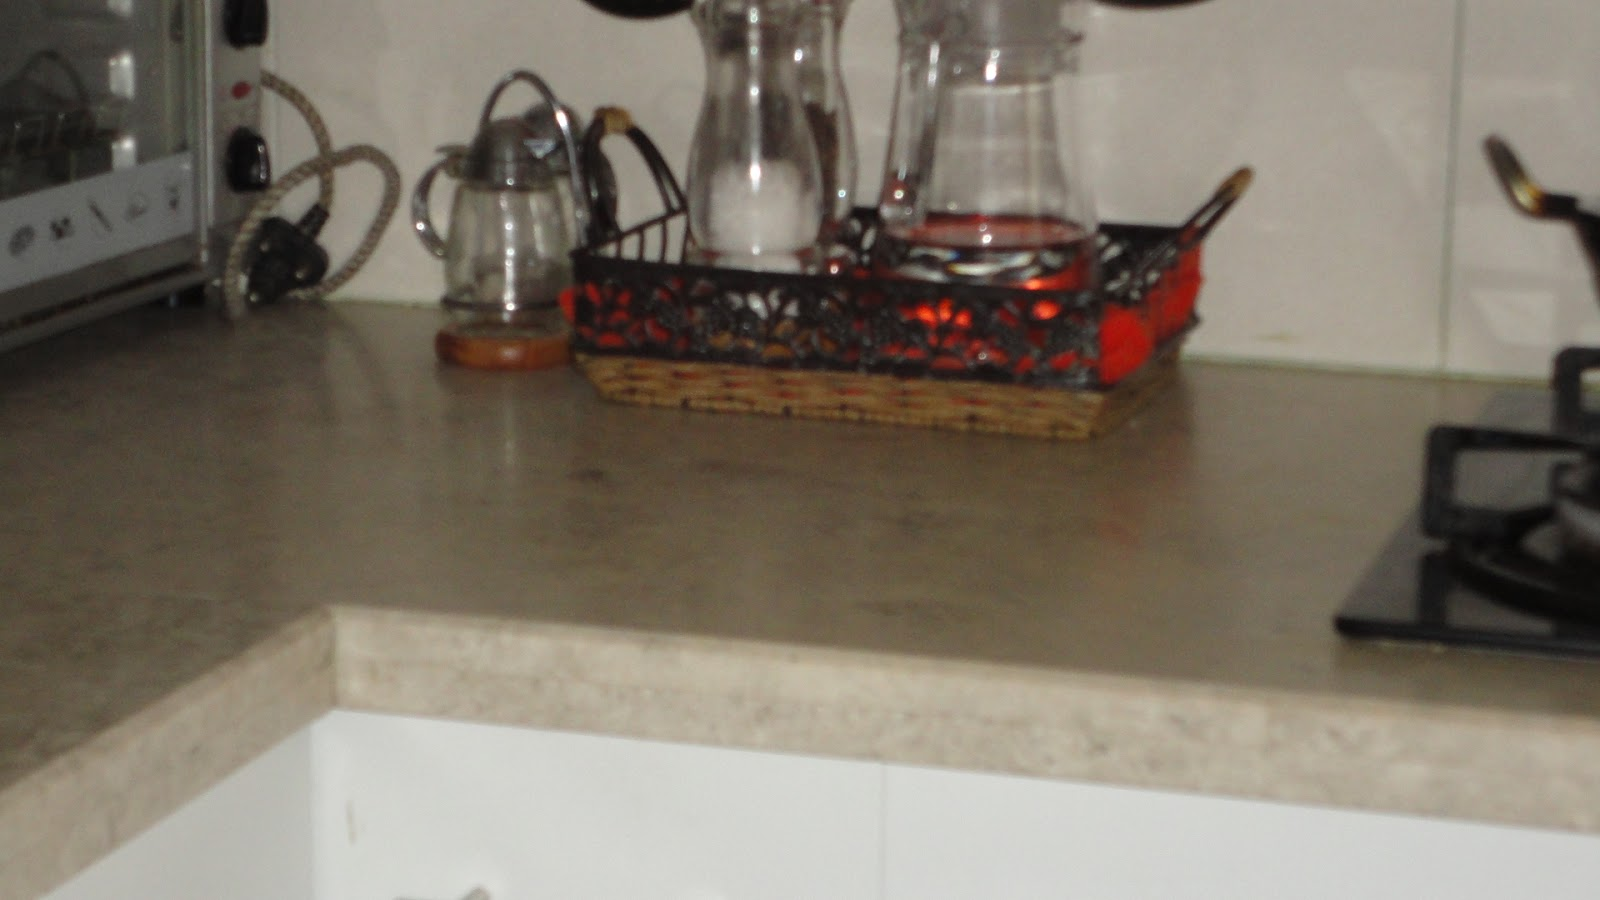 Home Design Ideas The What Material To Use For The Kitchen Counter Top Conundrum How To